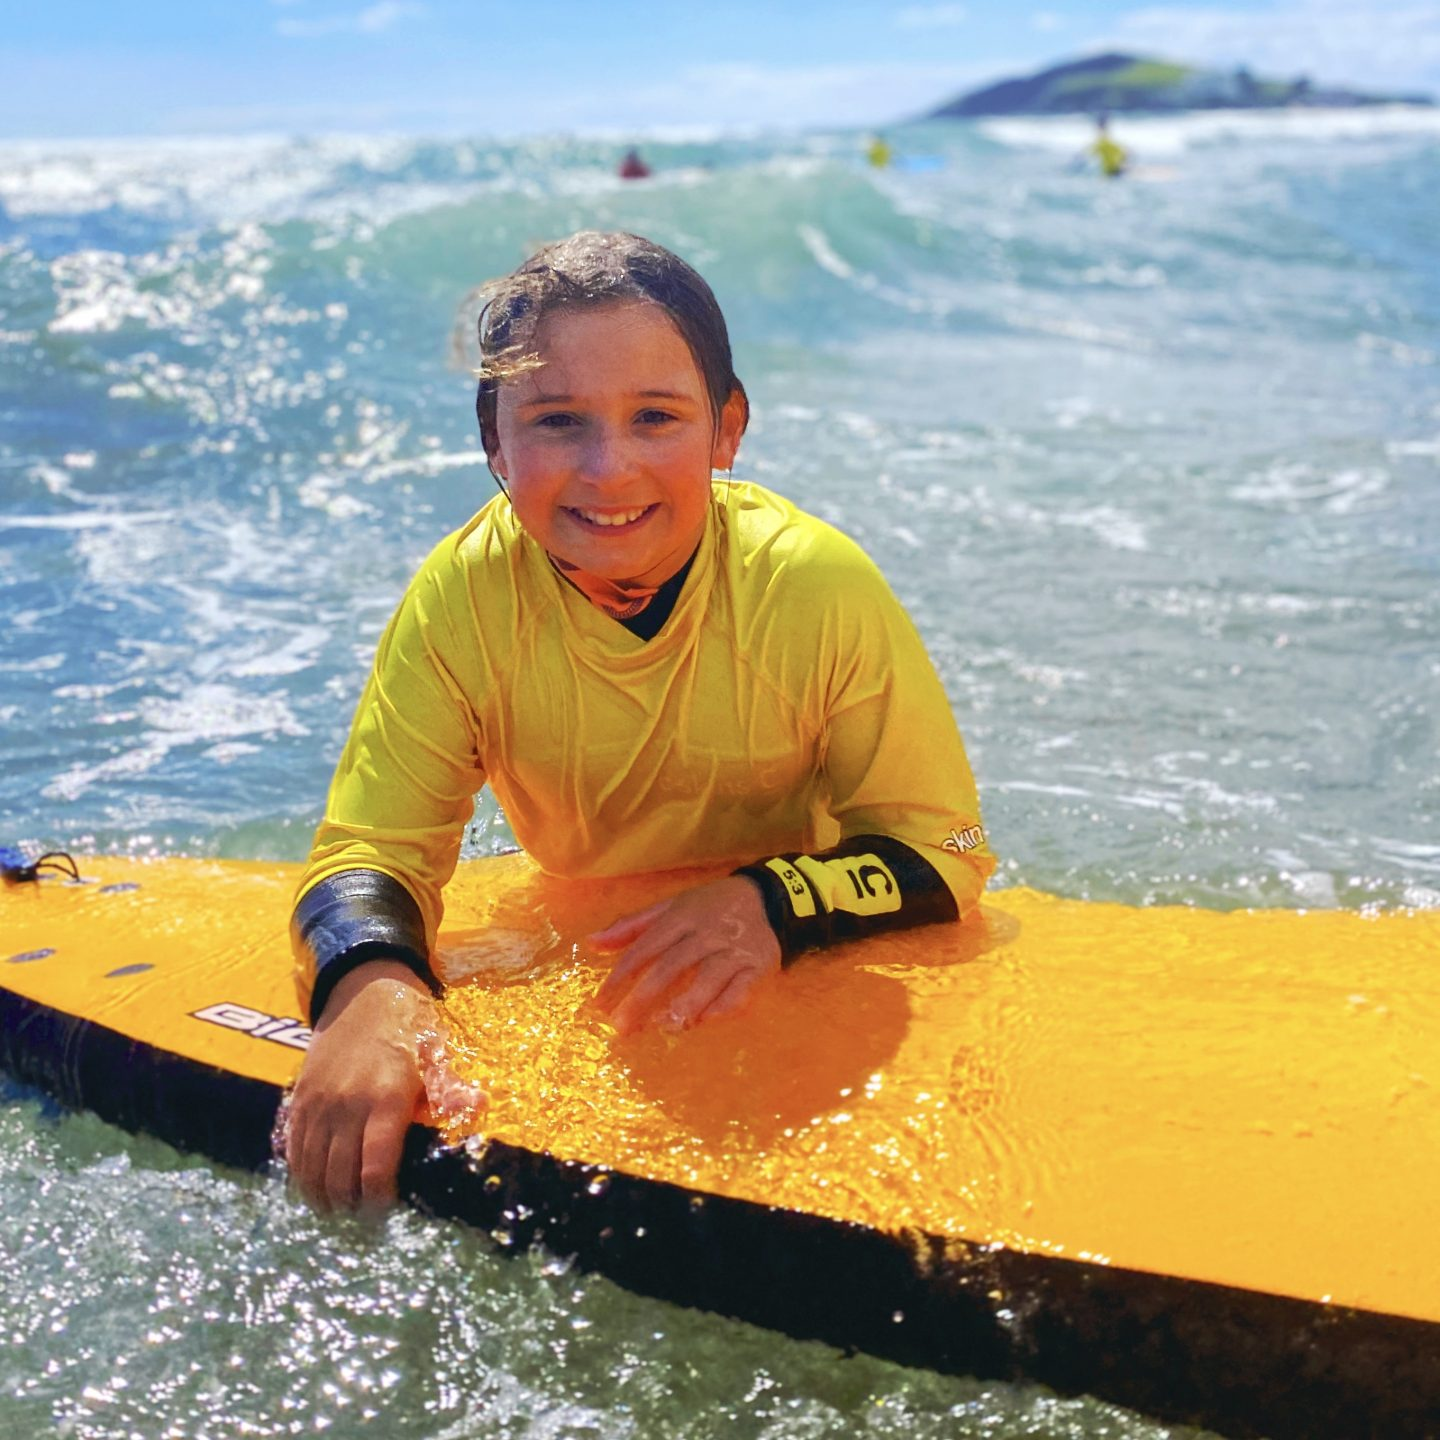 Camping in Devon and a girl surfing at Bantham  beach